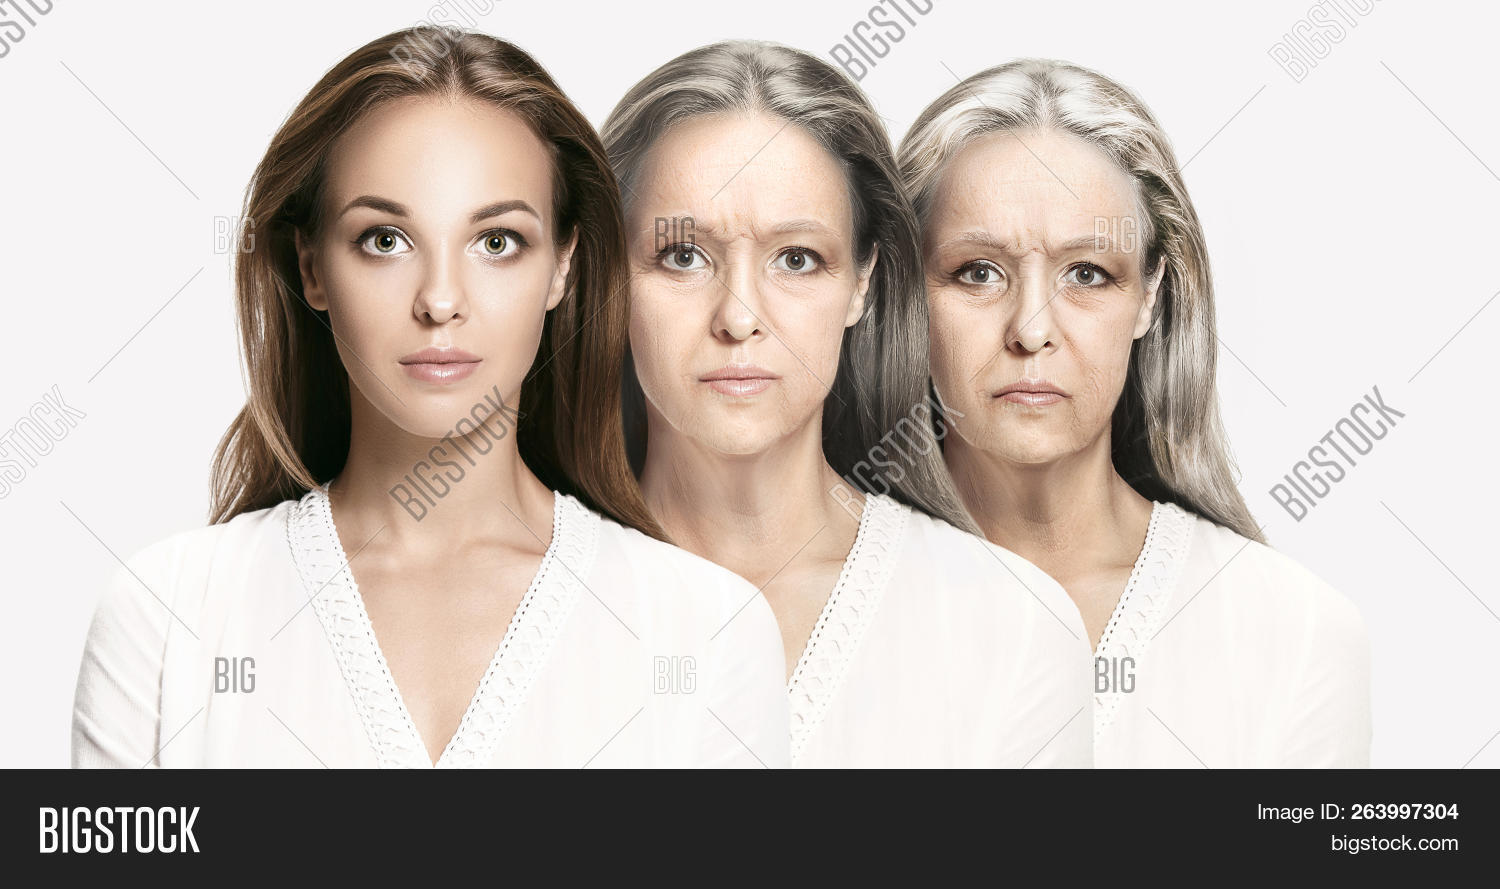 adult,age,aged,aging,anti,anti-aging,background,beautiful,beauty,care,caucasian,clean,comparison,concept,contrast,face,facial,female,generation,girl,half,head,health,healthy,human,isolated,life,makeup,mature,old,people,person,plastic,portrait,pretty,process,regeneration,rejuvenation,senior,skin,skincare,surgery,time,treatment,white,woman,wrinkled,wrinkles,young,youth